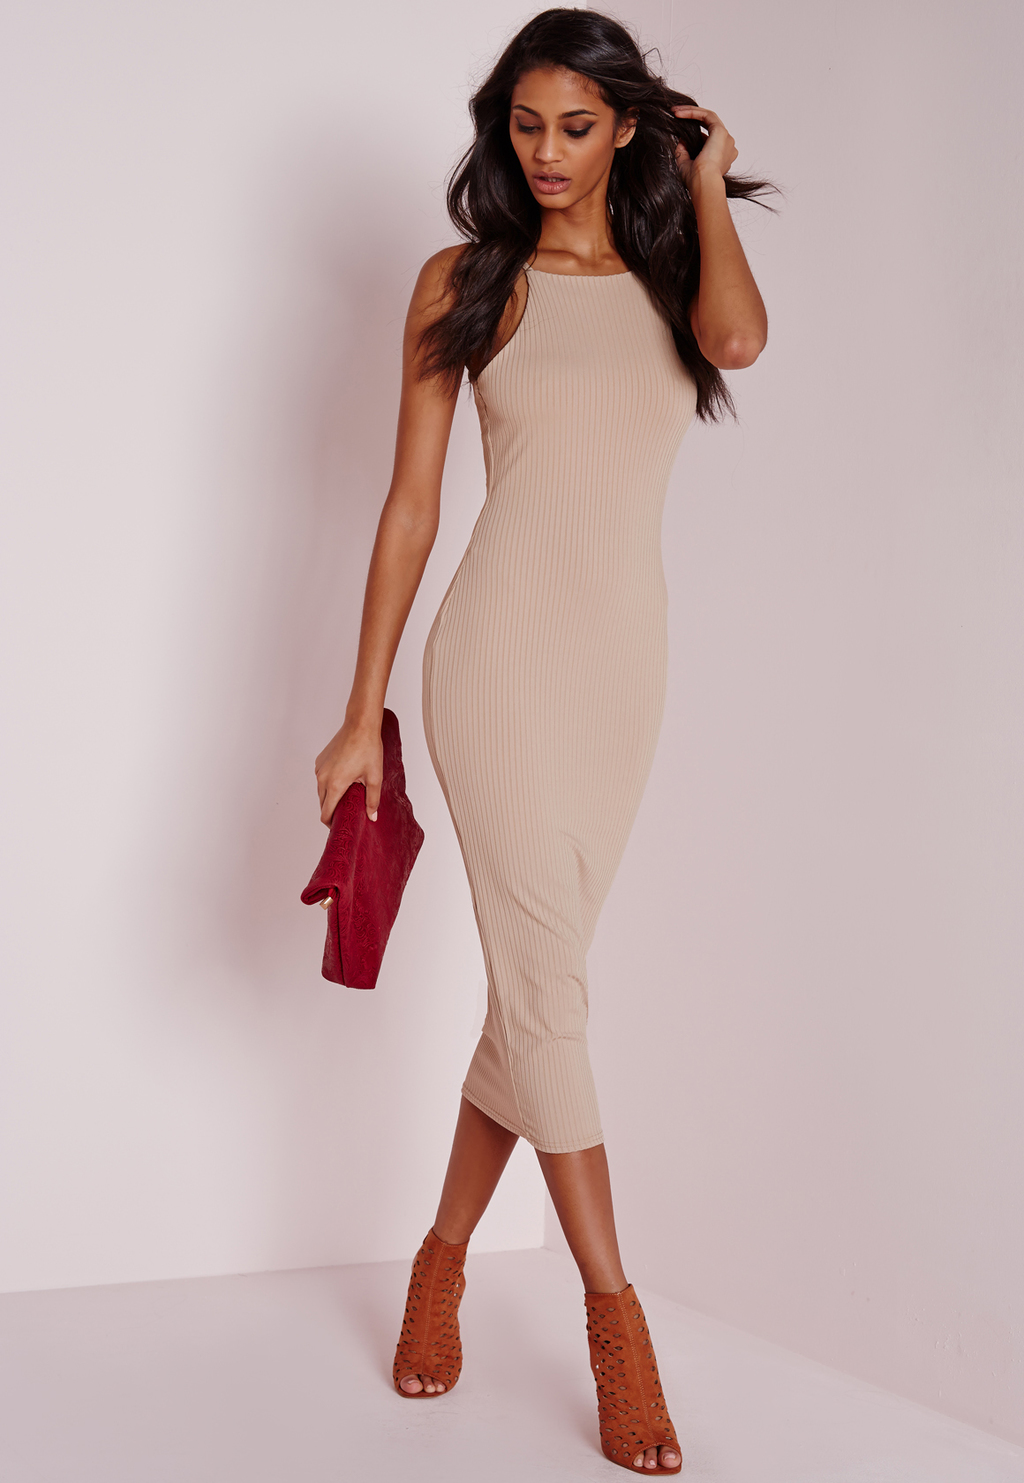 Ribbed Square Neck Midi Dress Camel, Beige - length: below the knee; neckline: round neck; fit: tight; pattern: plain; sleeve style: sleeveless; style: bodycon; predominant colour: camel; occasions: evening, occasion; fibres: polyester/polyamide - stretch; sleeve length: sleeveless; pattern type: fabric; texture group: jersey - stretchy/drapey; season: s/s 2016